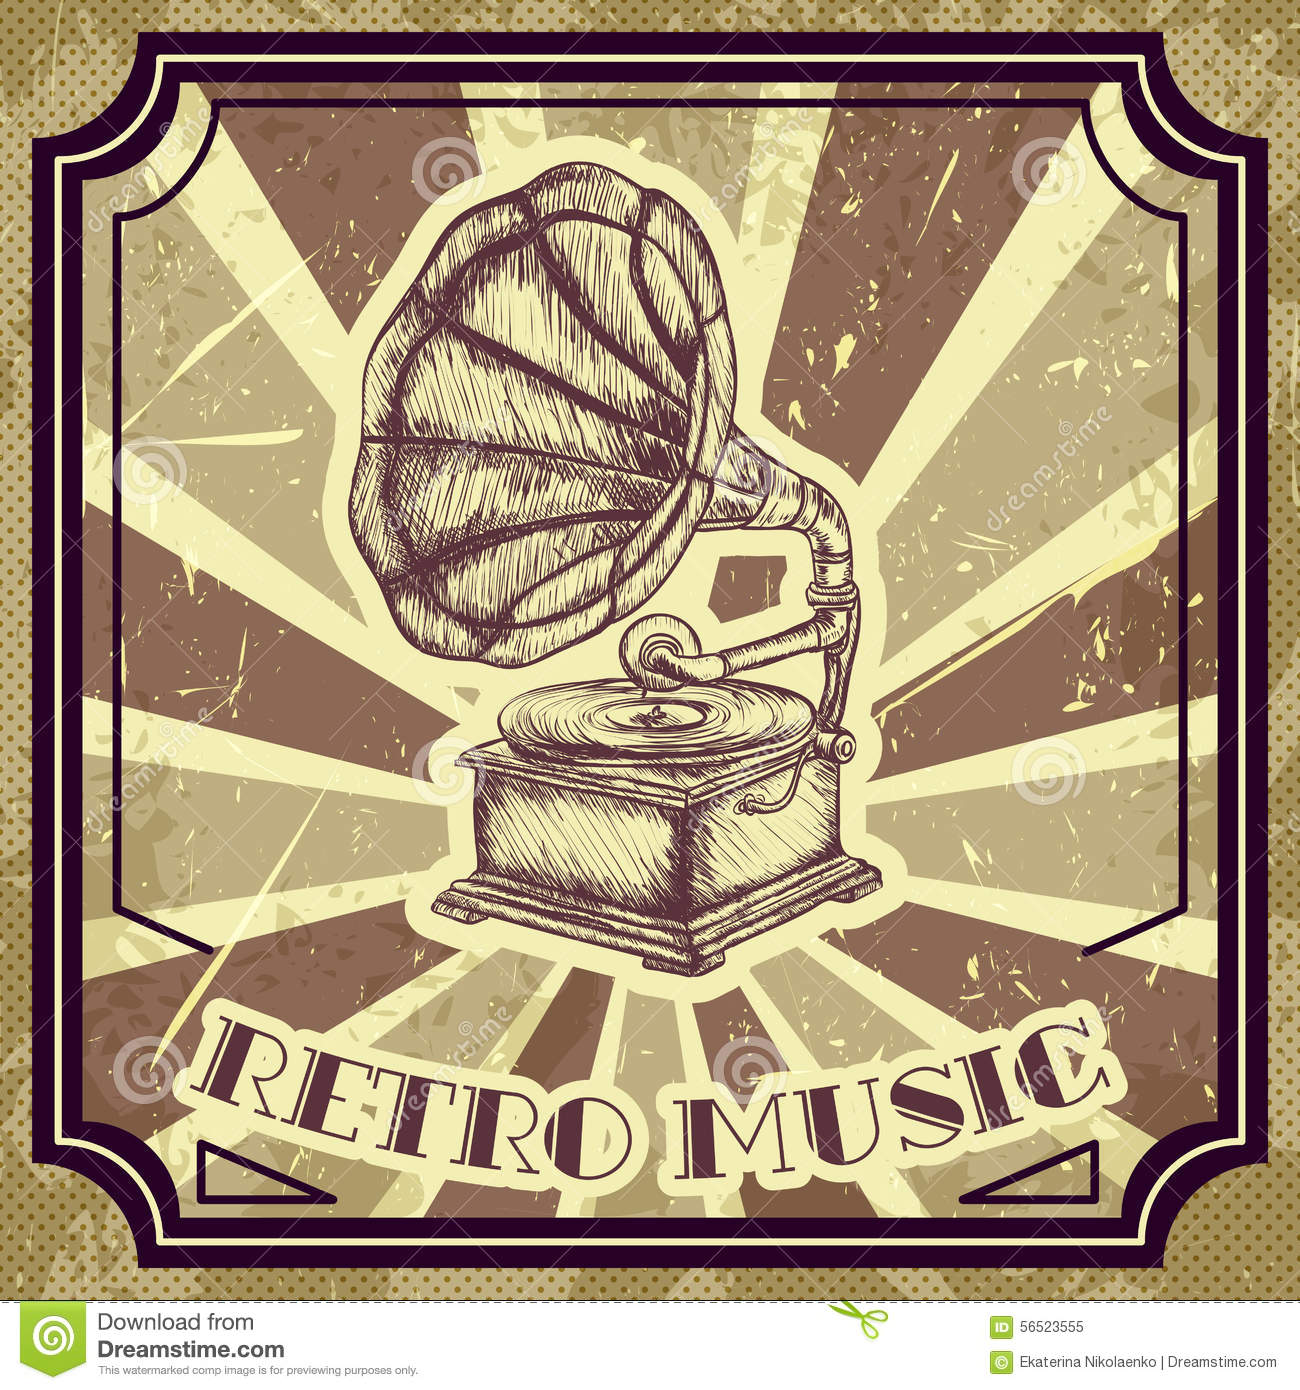 Classic Retro Illustration: Poster With Vintage Gramophone. Retro Hand Drawn Vector